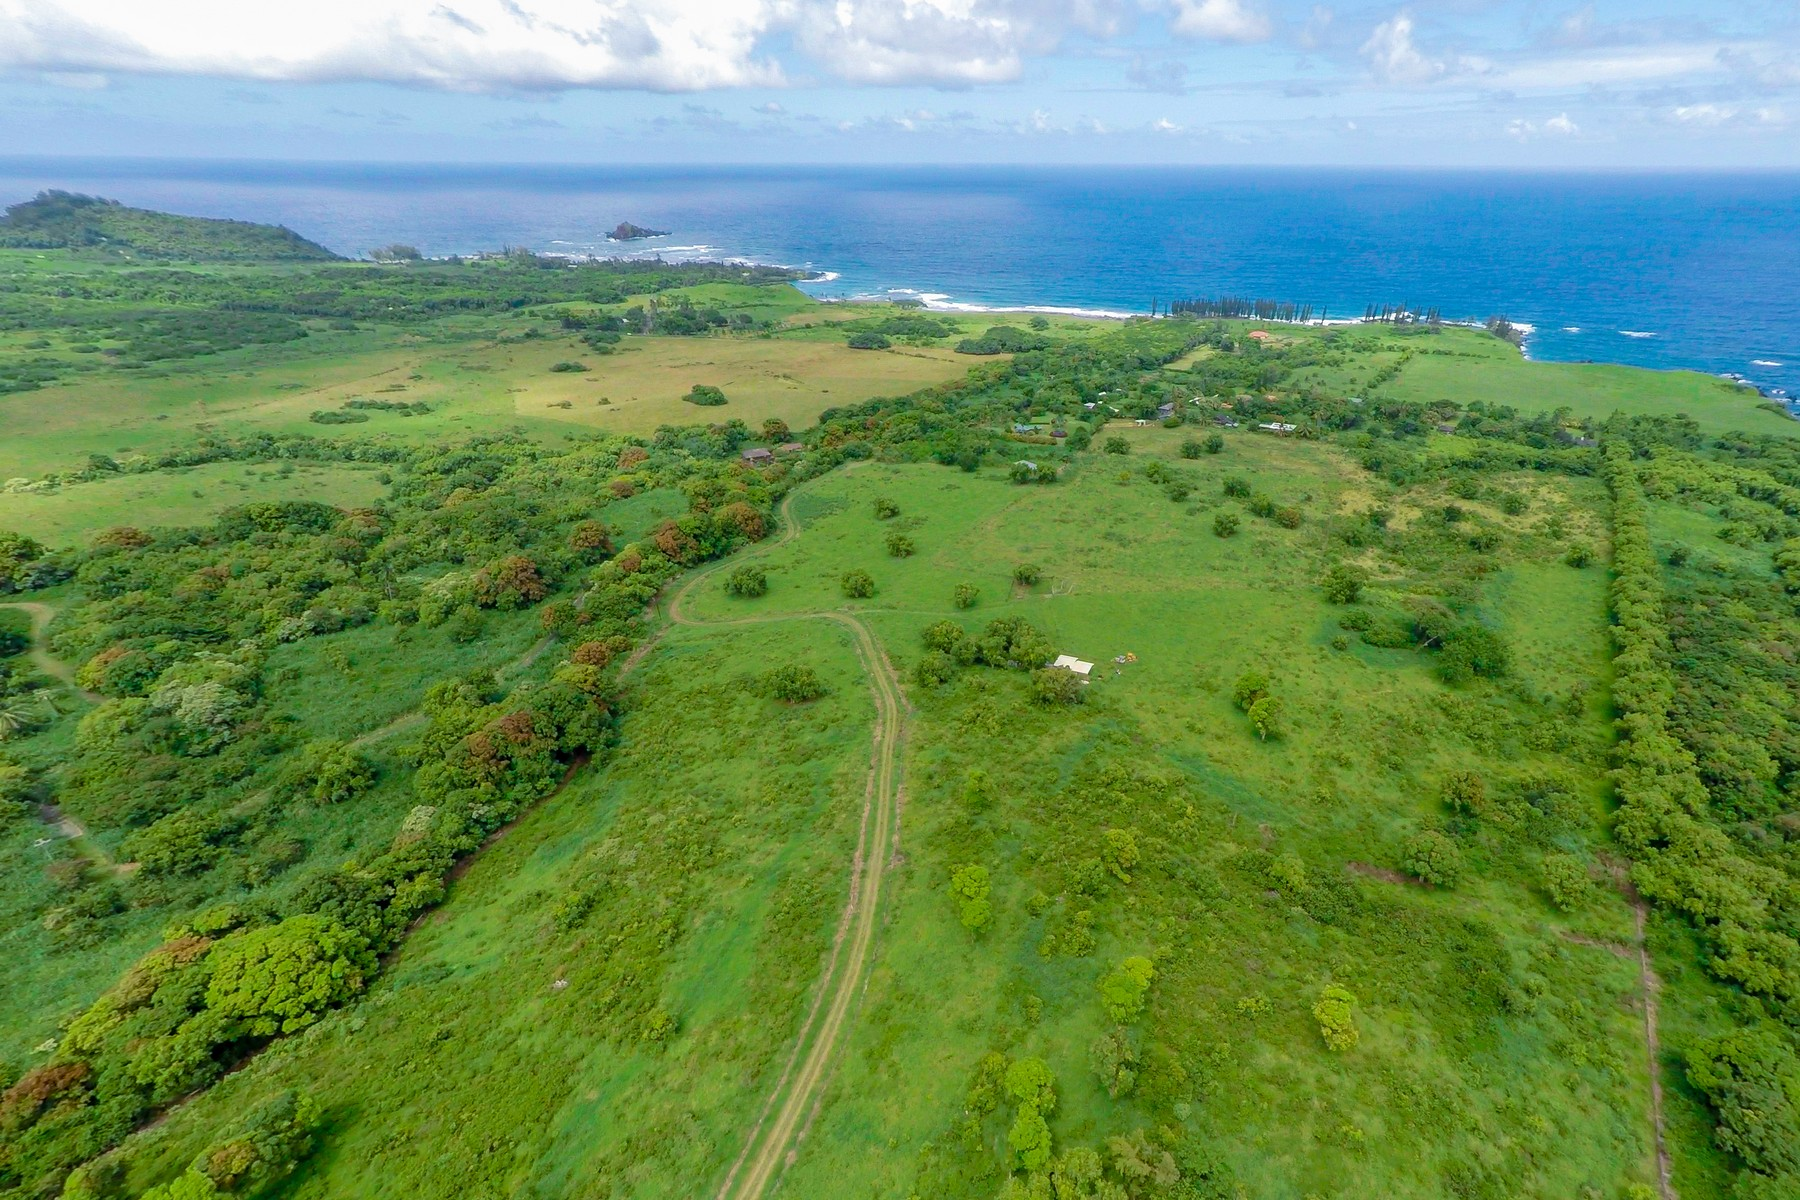 Terreno para Venda às Over 16 Acres in Beautiful Maka'alae - Hana, Maui 213 Kapia Road, Lot #3-Parcel #68 Hana, Havaí, 96713 Estados Unidos